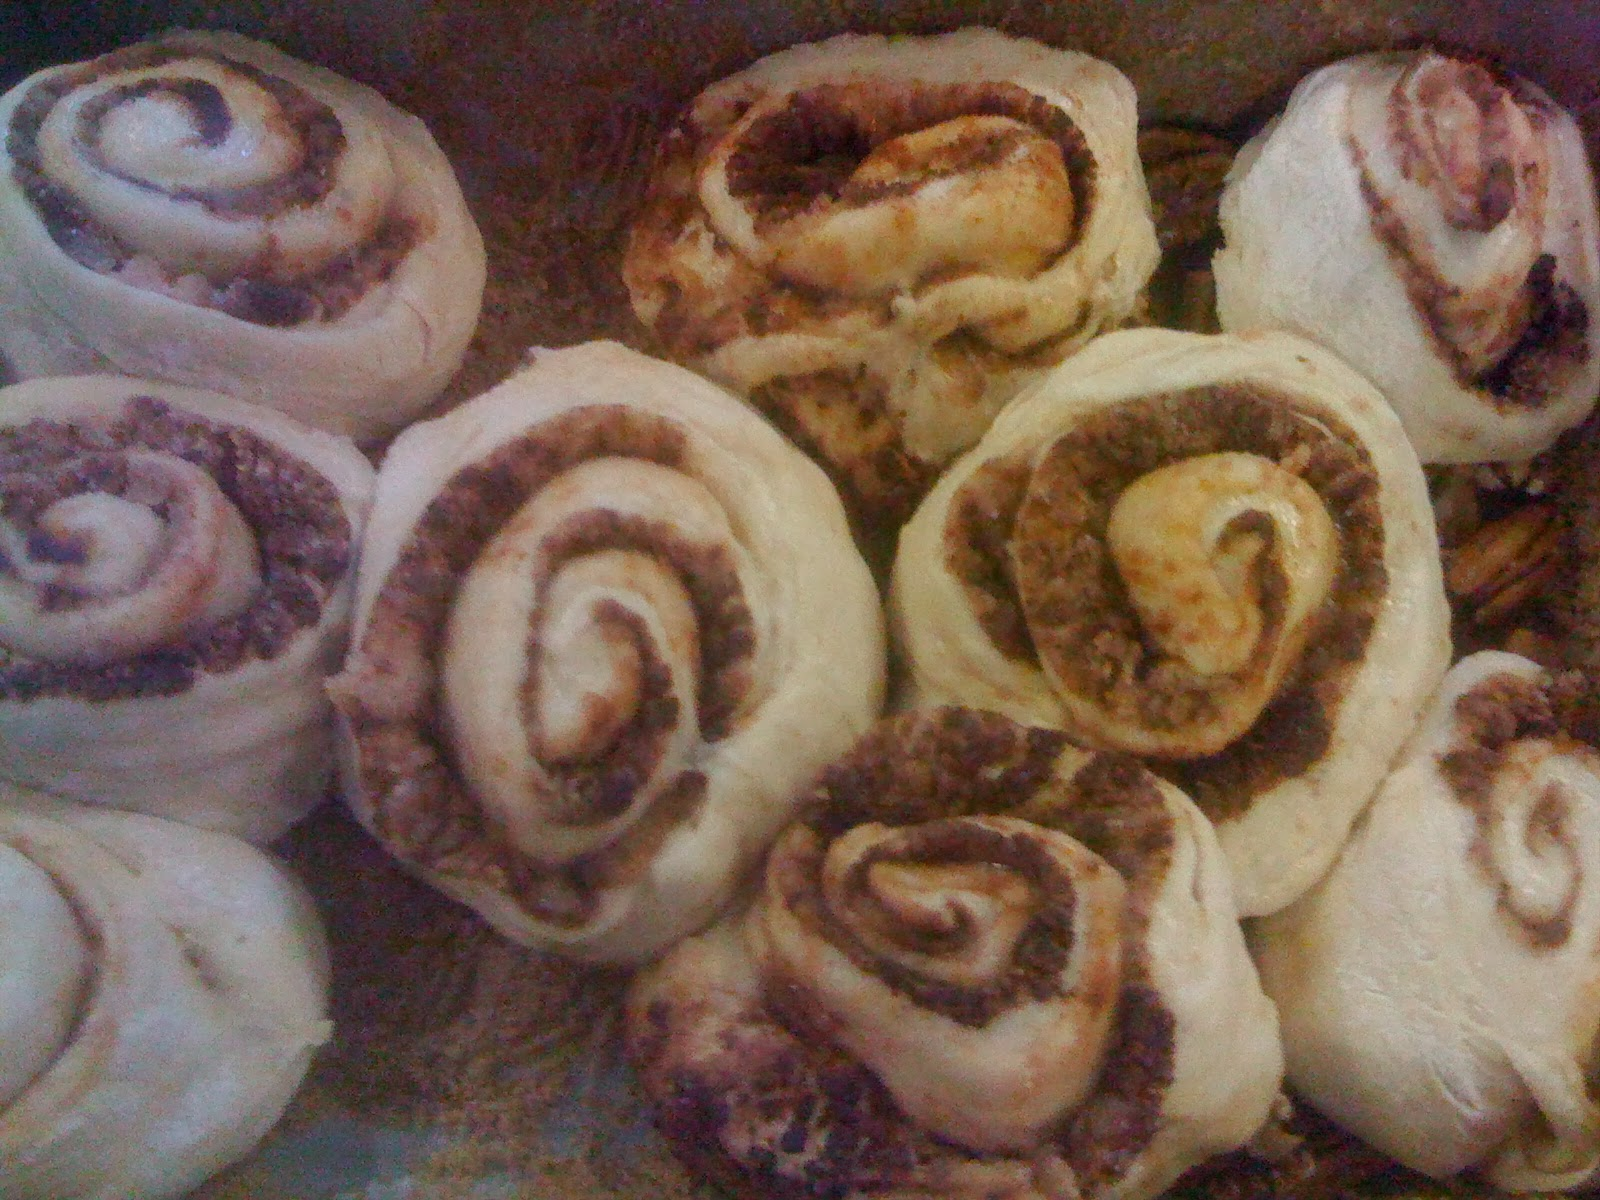 Carol Kindred's beloved cinnamon roll recipe